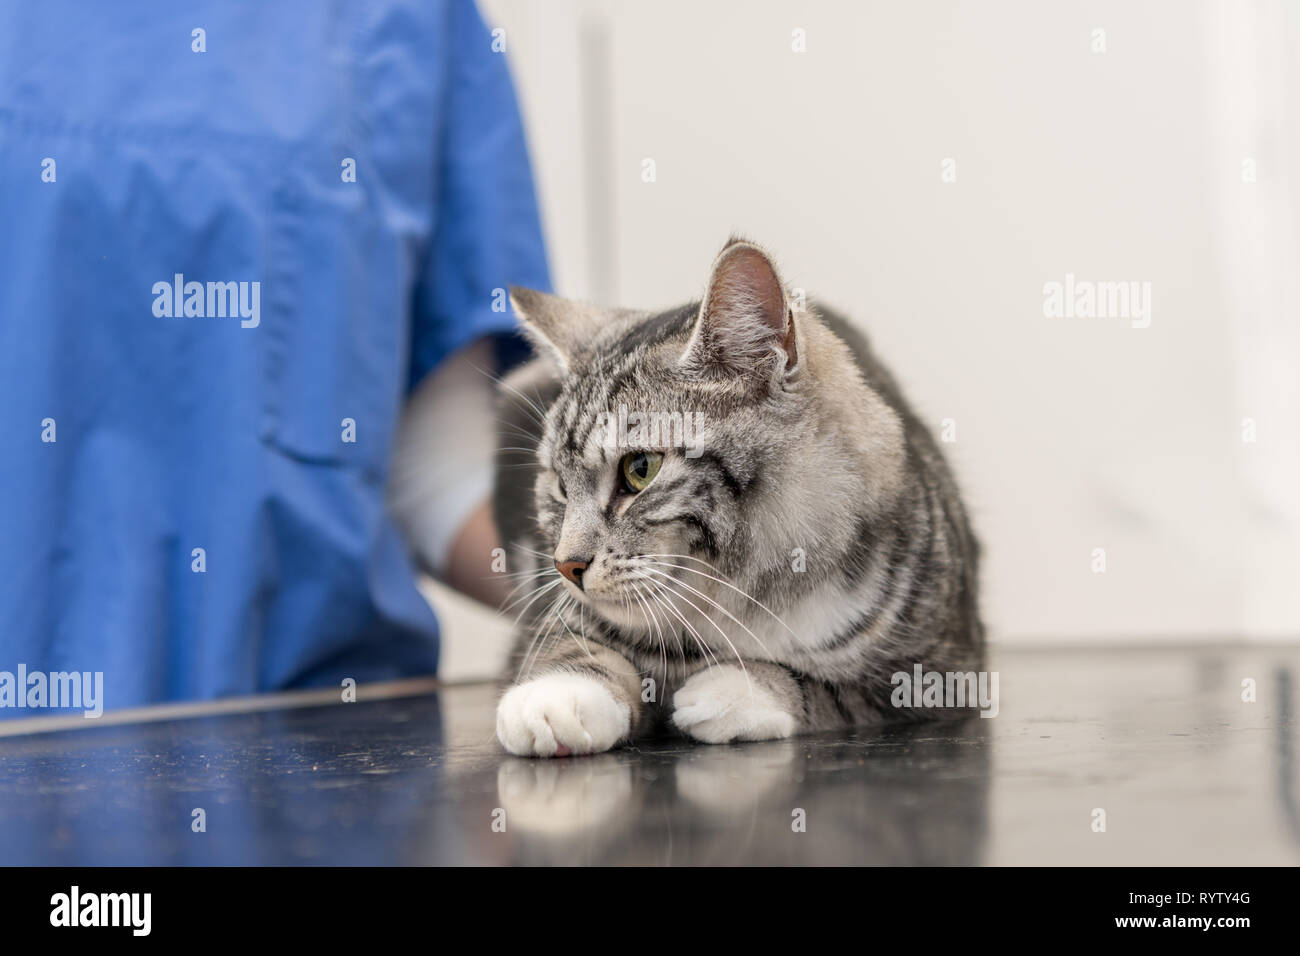 Cute cat in the veterinary practice is examined by the veterinarian - Stock Image